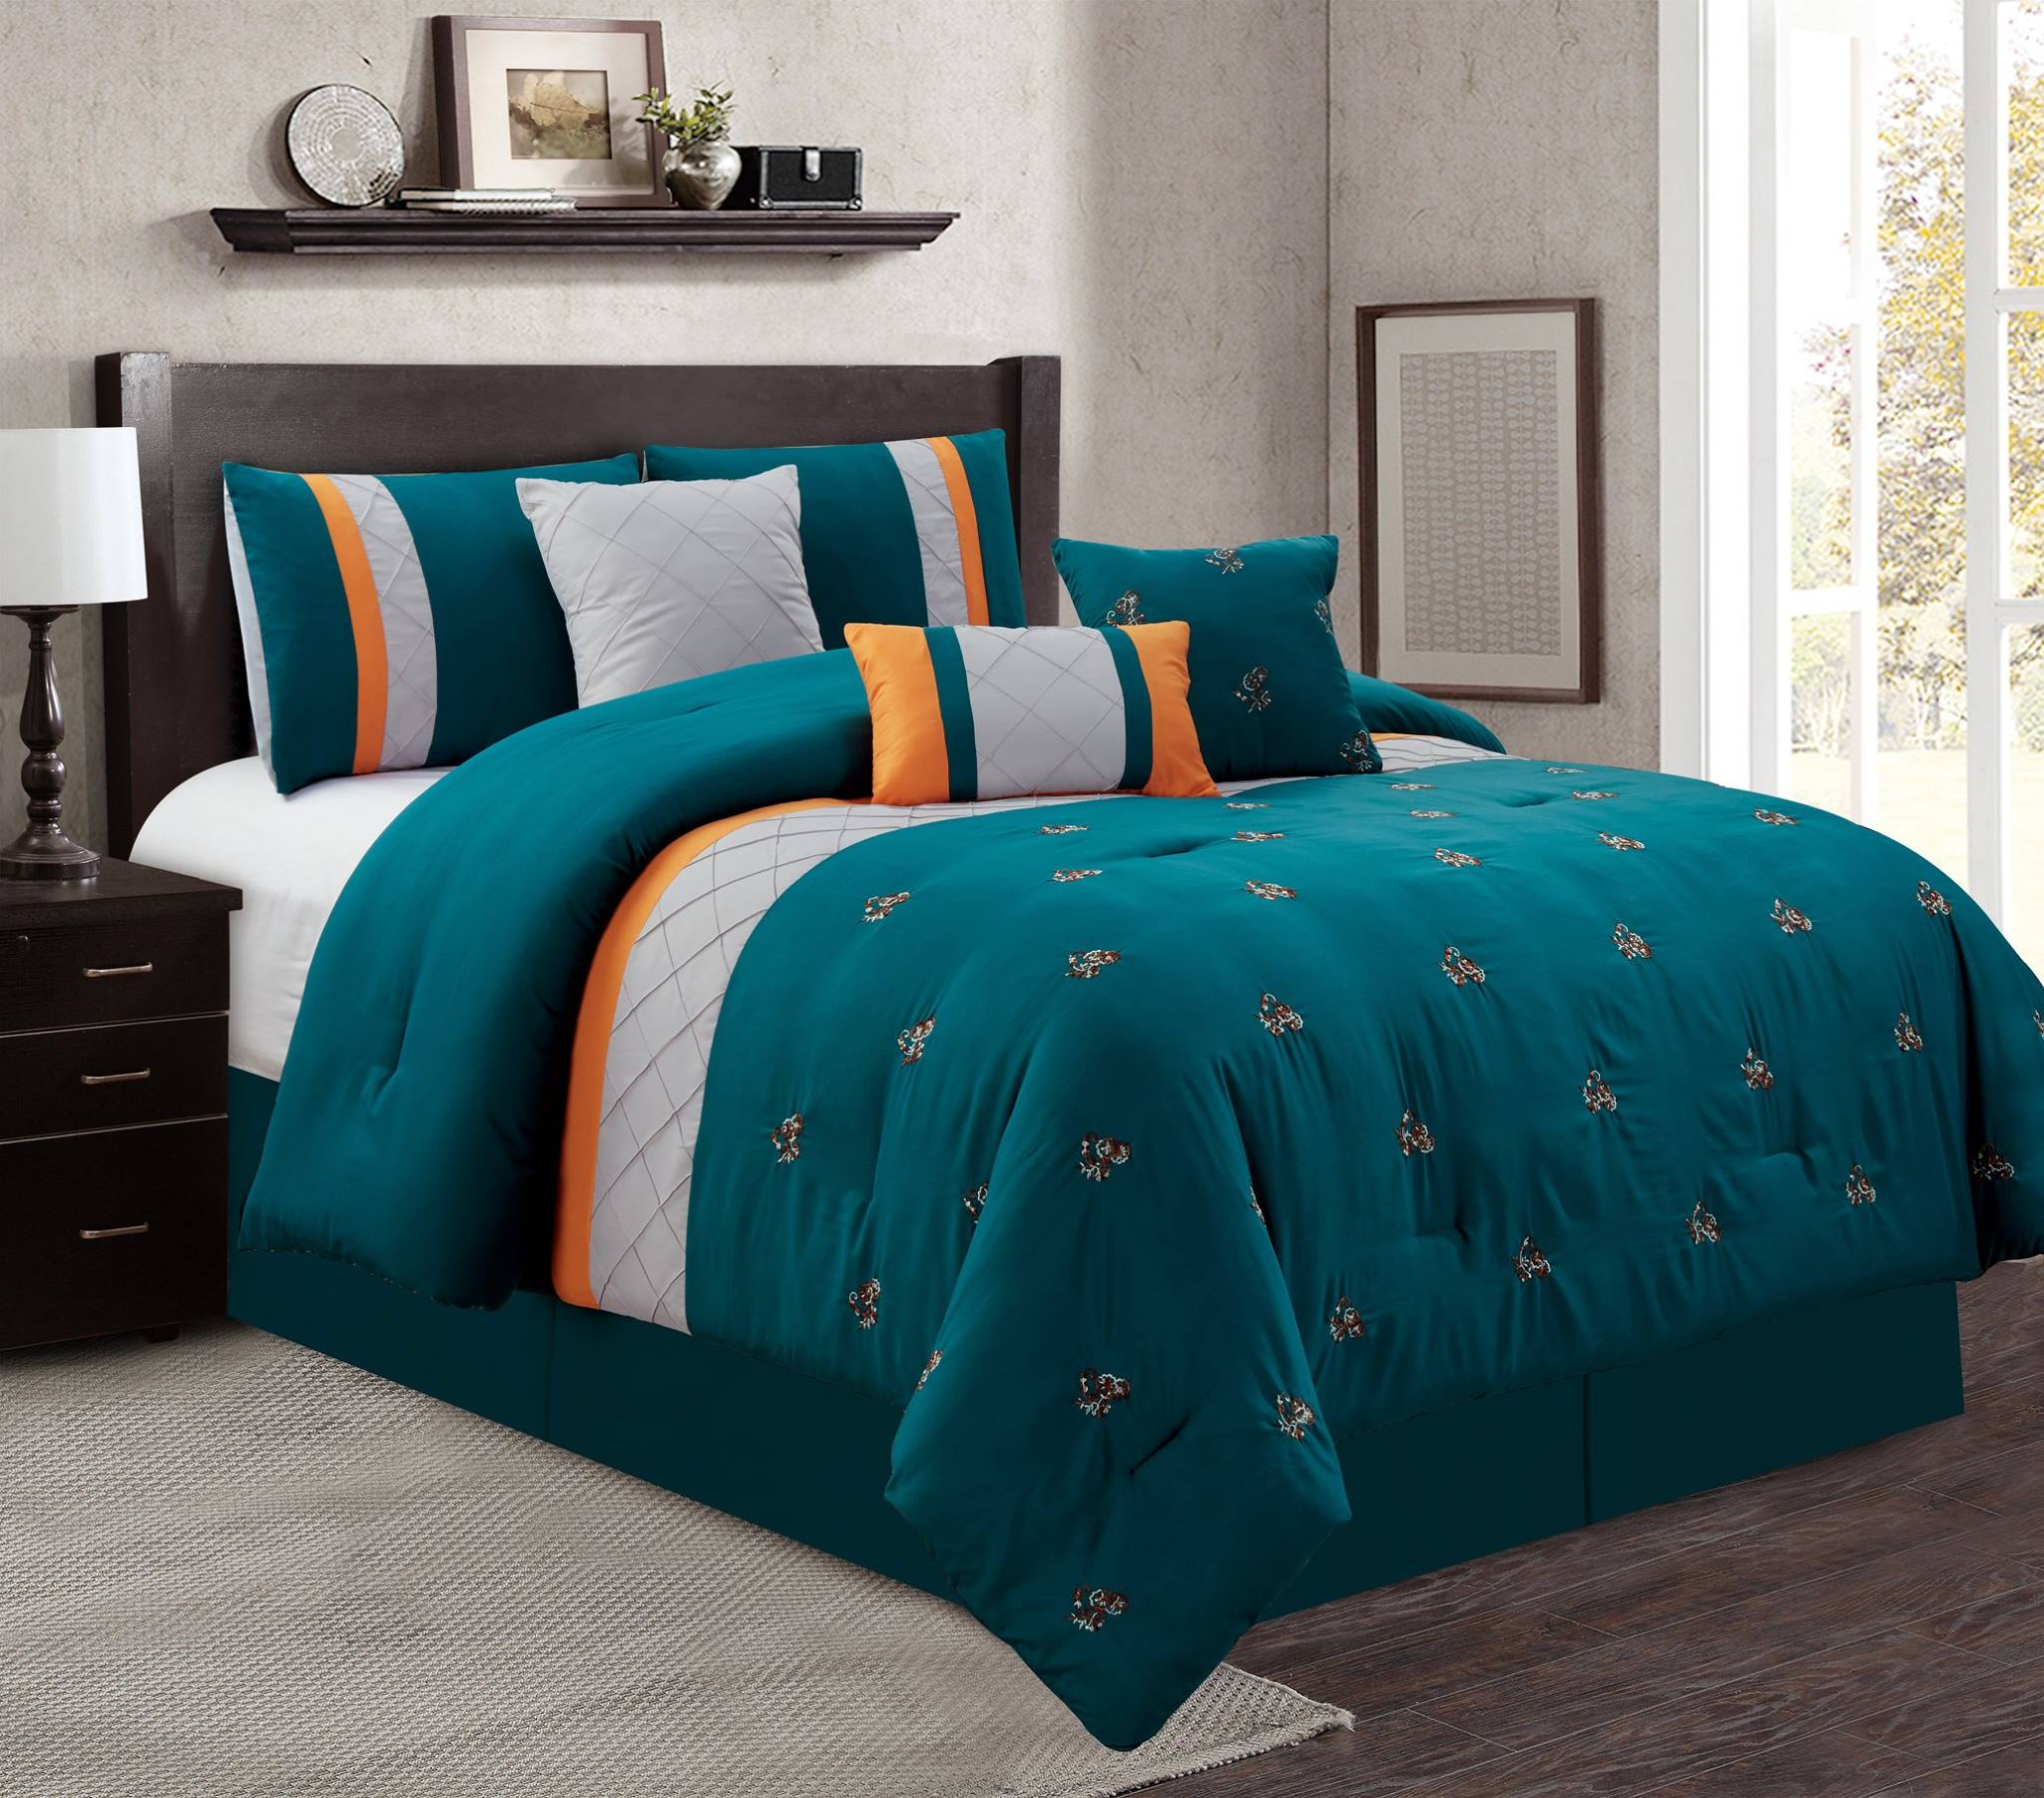 grey kitchen rugs single handle pullout faucet luxury 7 piece comforter set teal/grey/orange floral ...